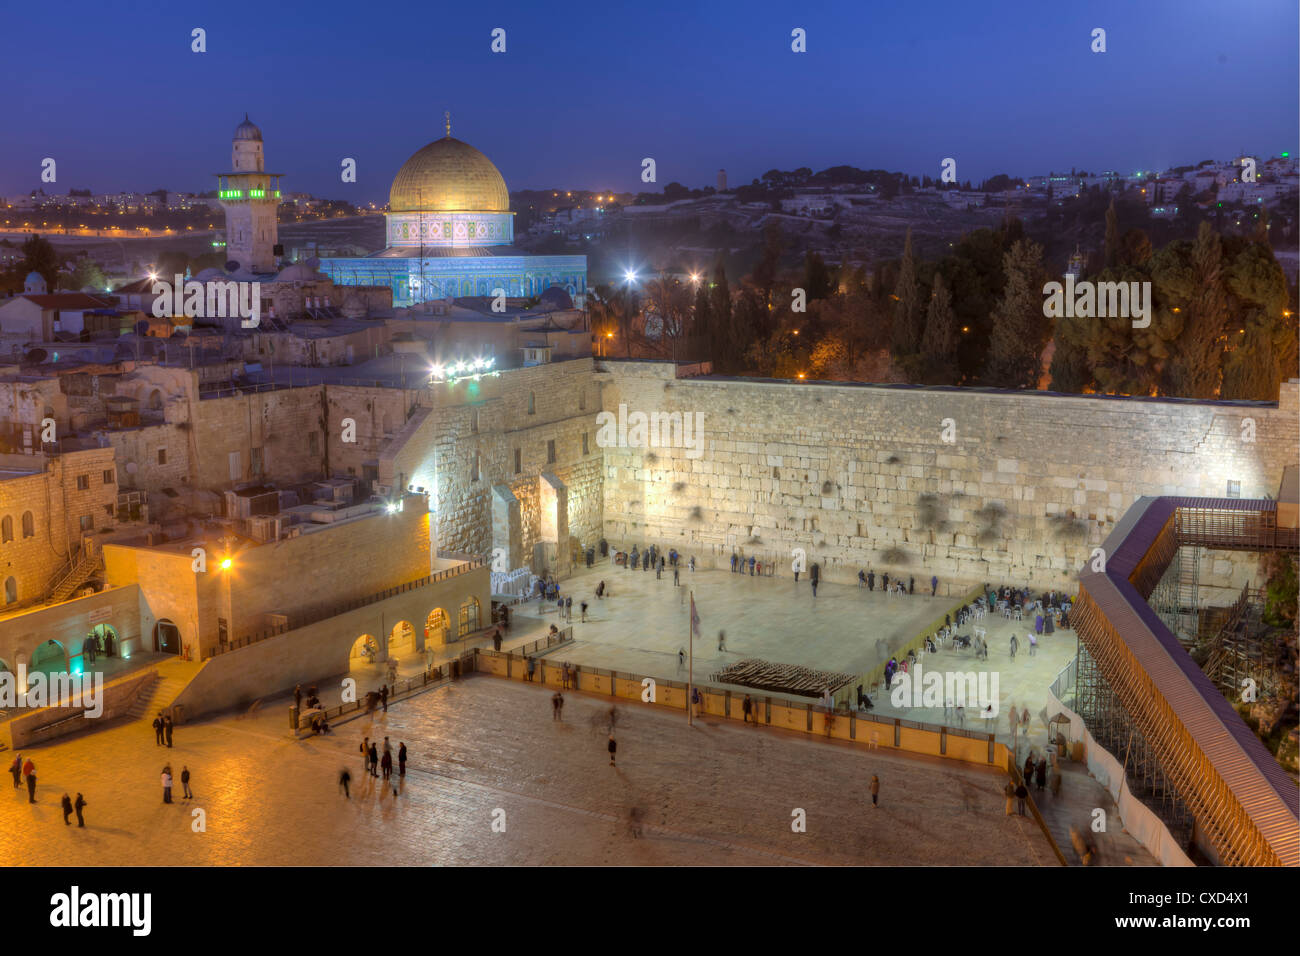 Jewish Quarter of the Western Wall Plaza, Wailing Wall, Old City, UNESCO World Heritge Site, Jerusalem, Israel - Stock Image